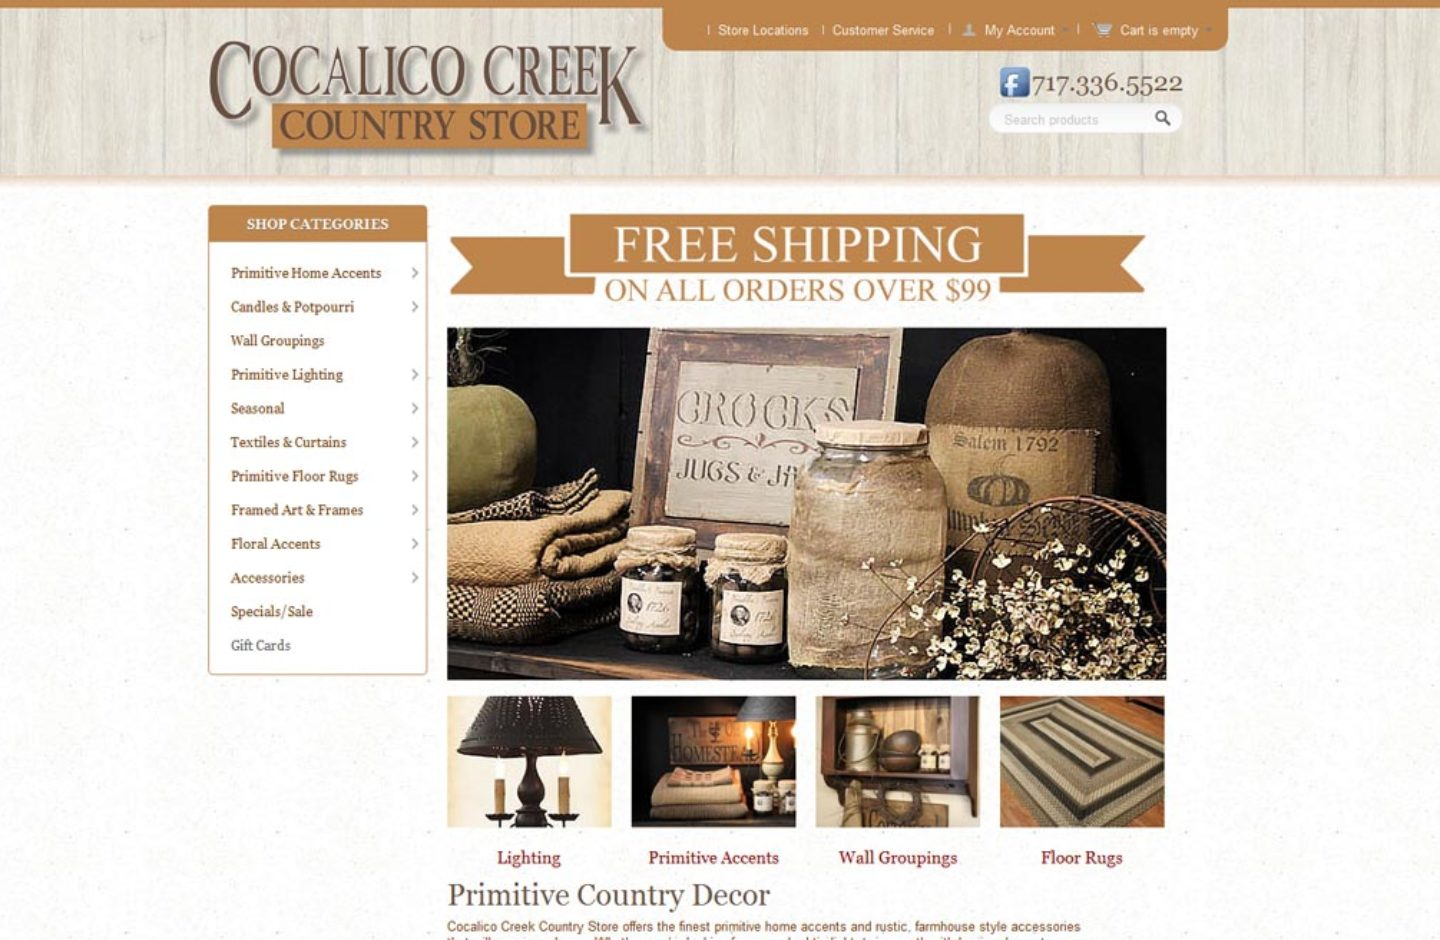 Cocalico Creek Country Store